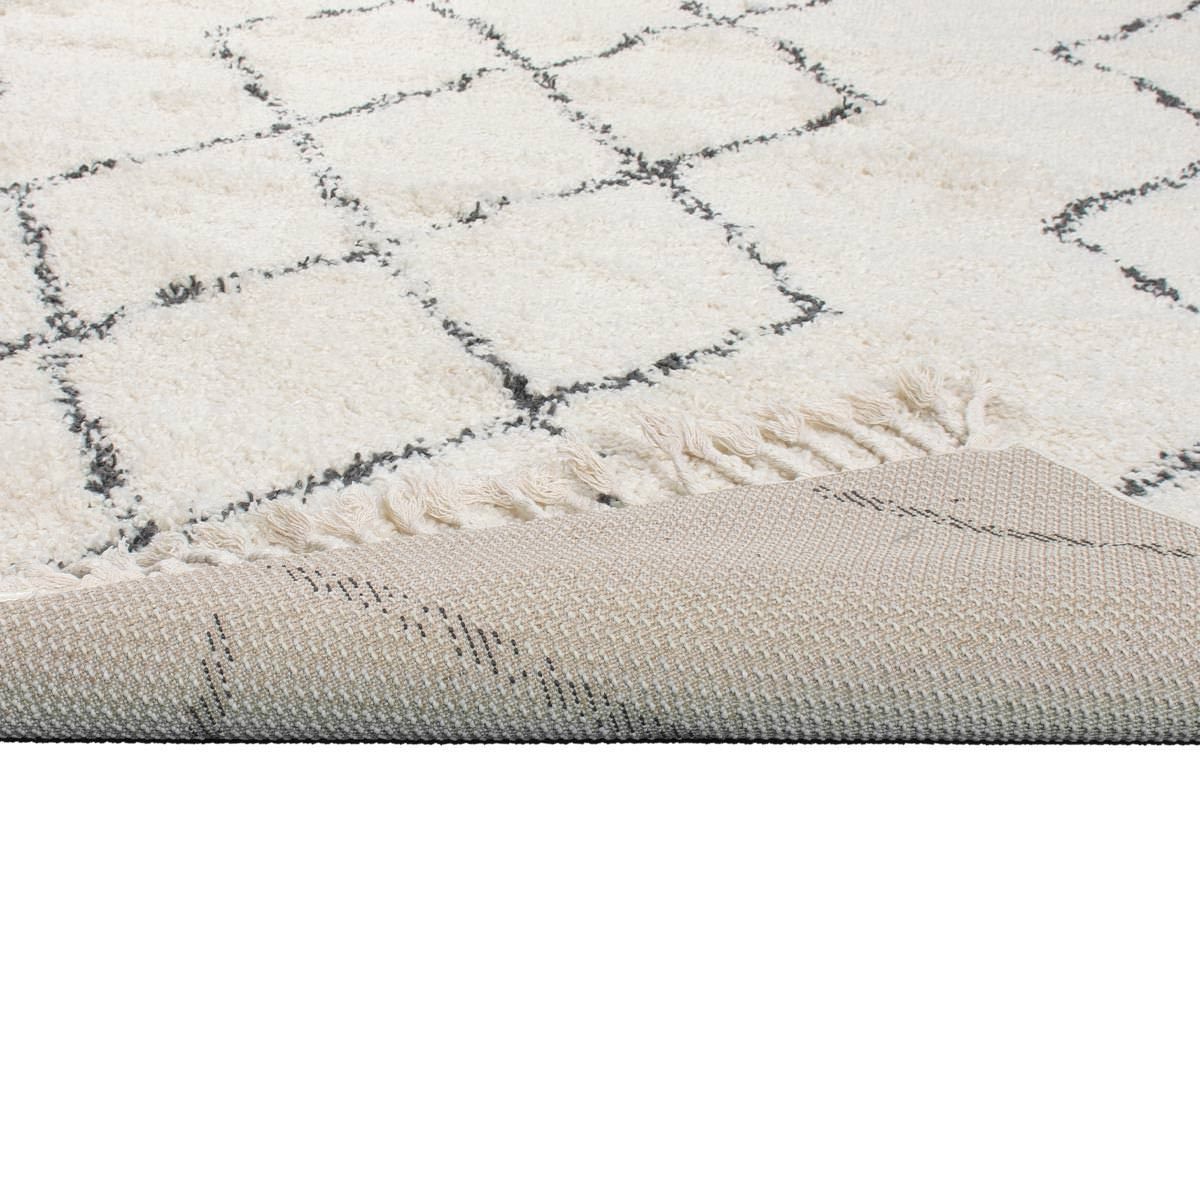 Shaggy Marrakech Rug 03 Cream/Black Runner 2